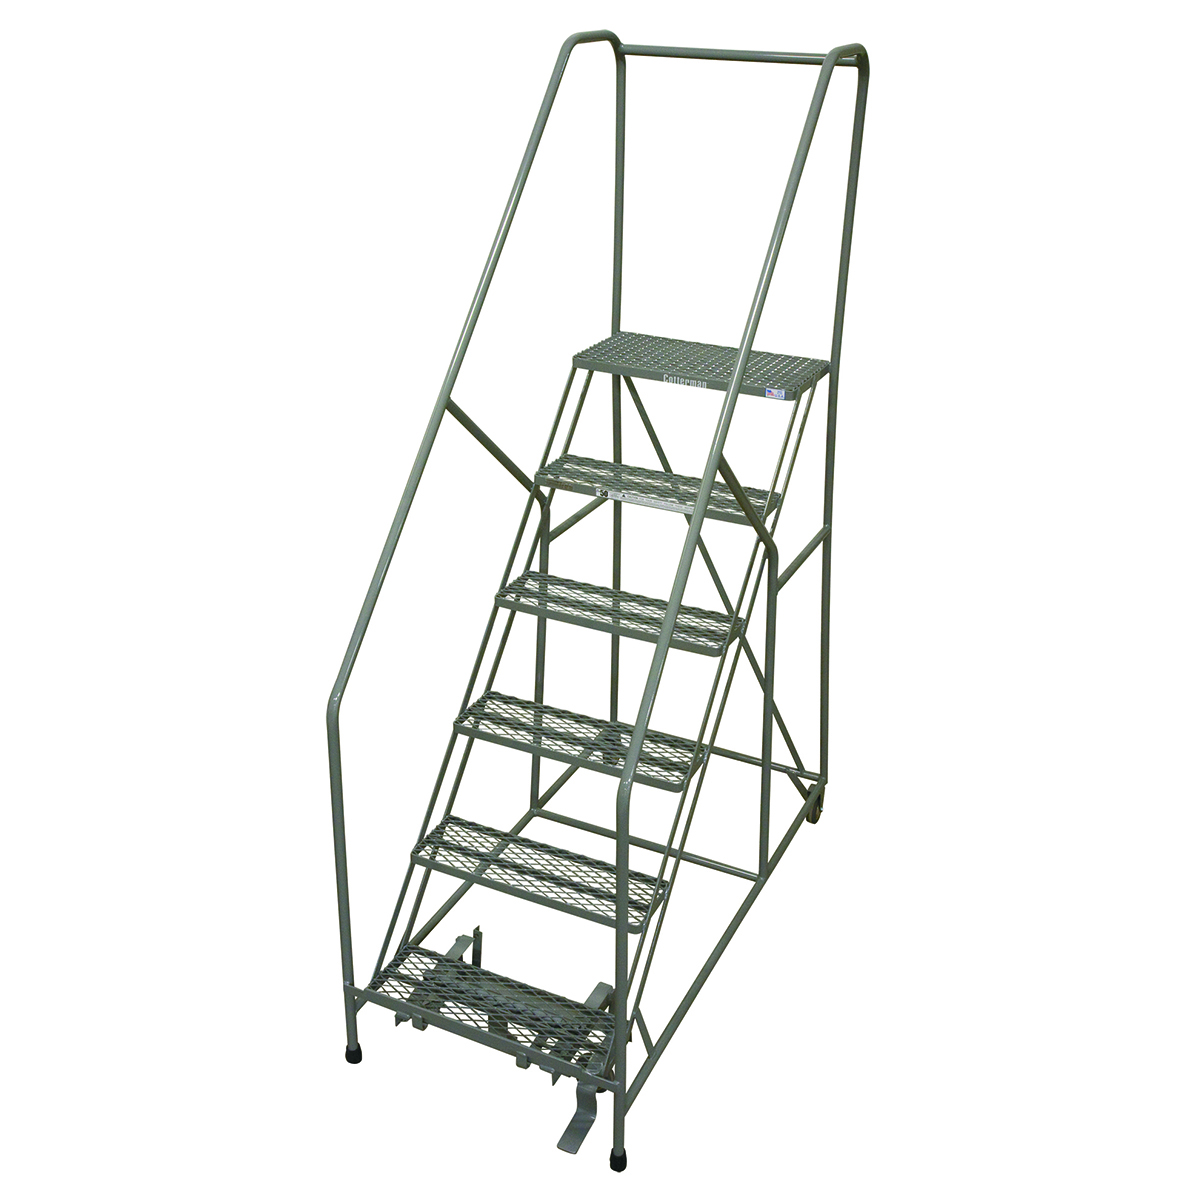 50 Degree Climbing Angle Ladder with 5 Steps and Platform